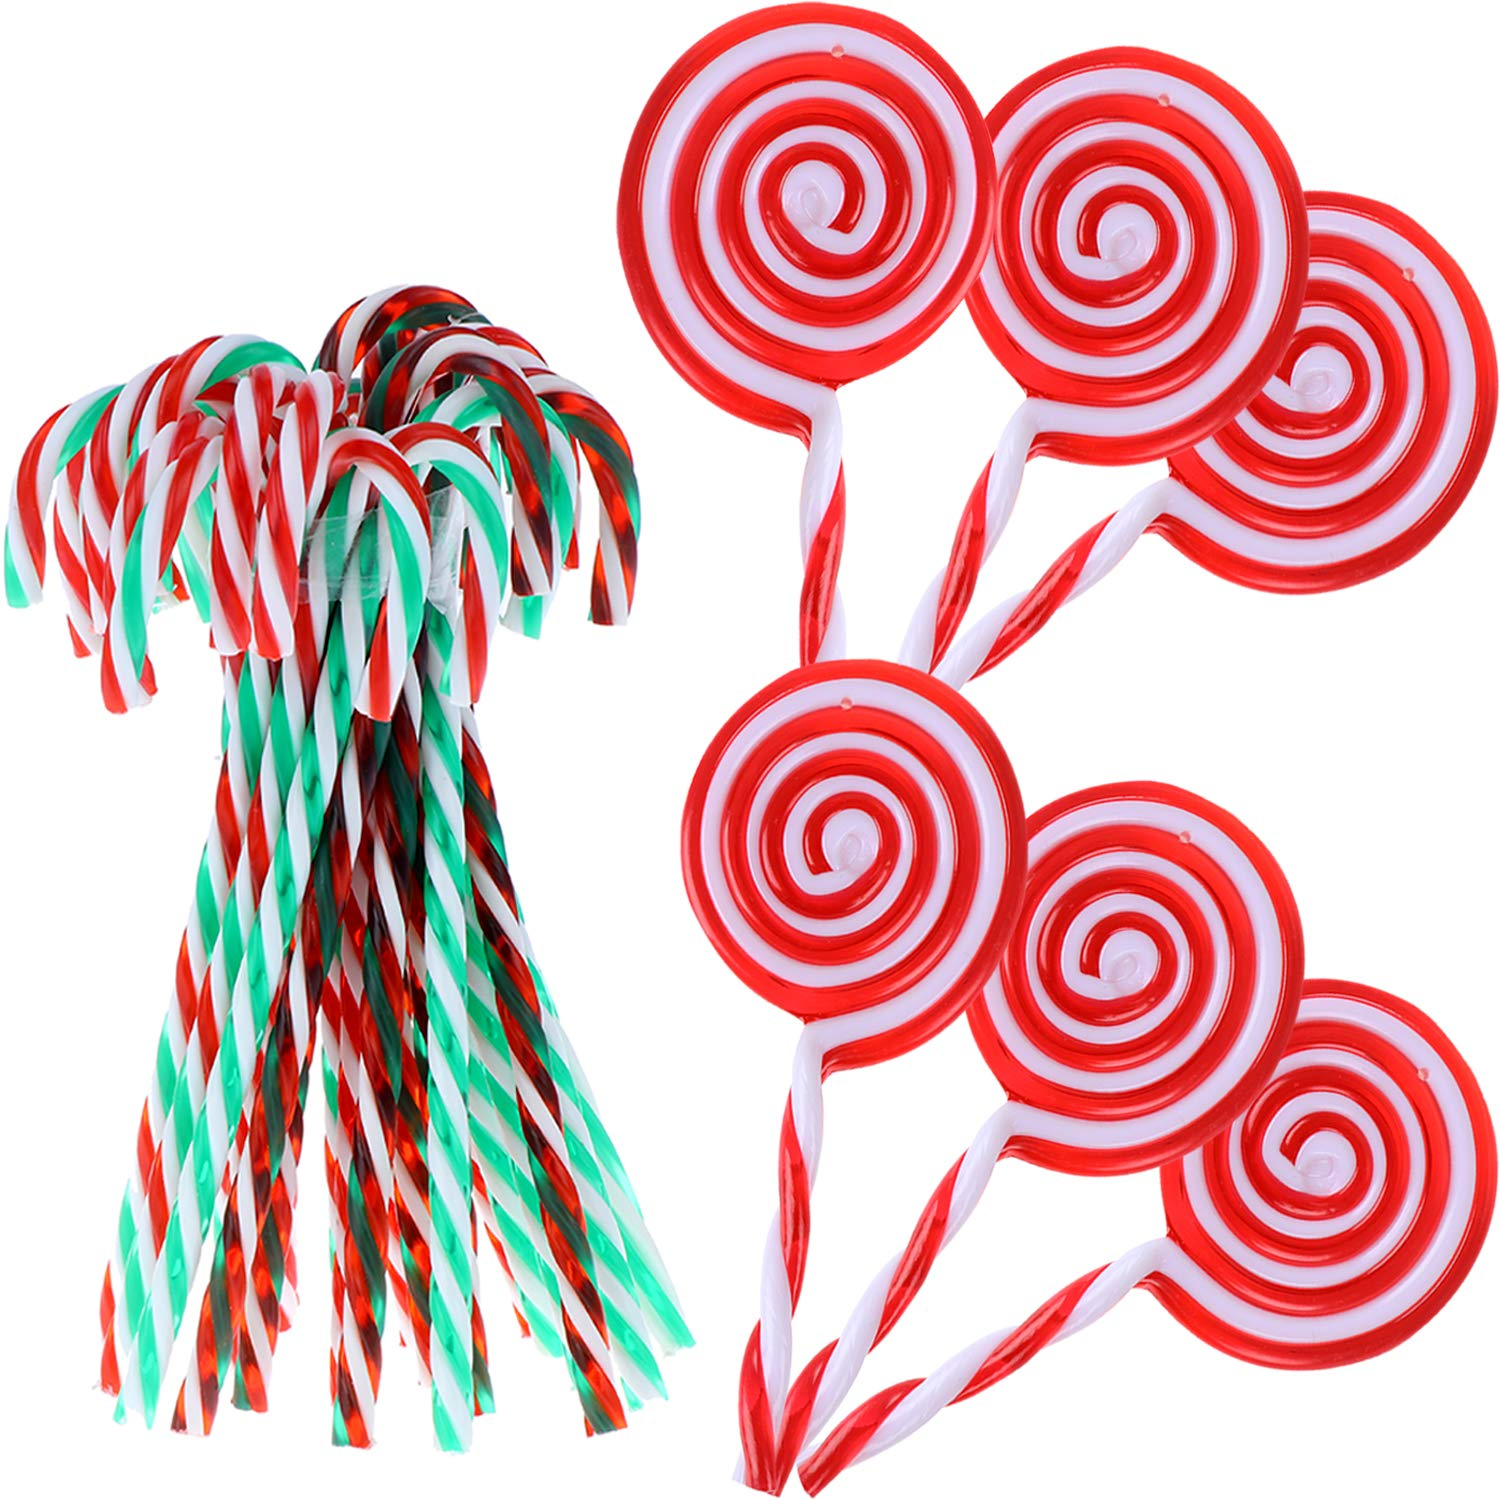 LOCOLO 30Pcs Christmas Plastic Candy Canes Christmas Lollipop Decorations, Sweet Decor for Girls, Boys, Kids, Home, Classroom, Baby Shower Party Supply